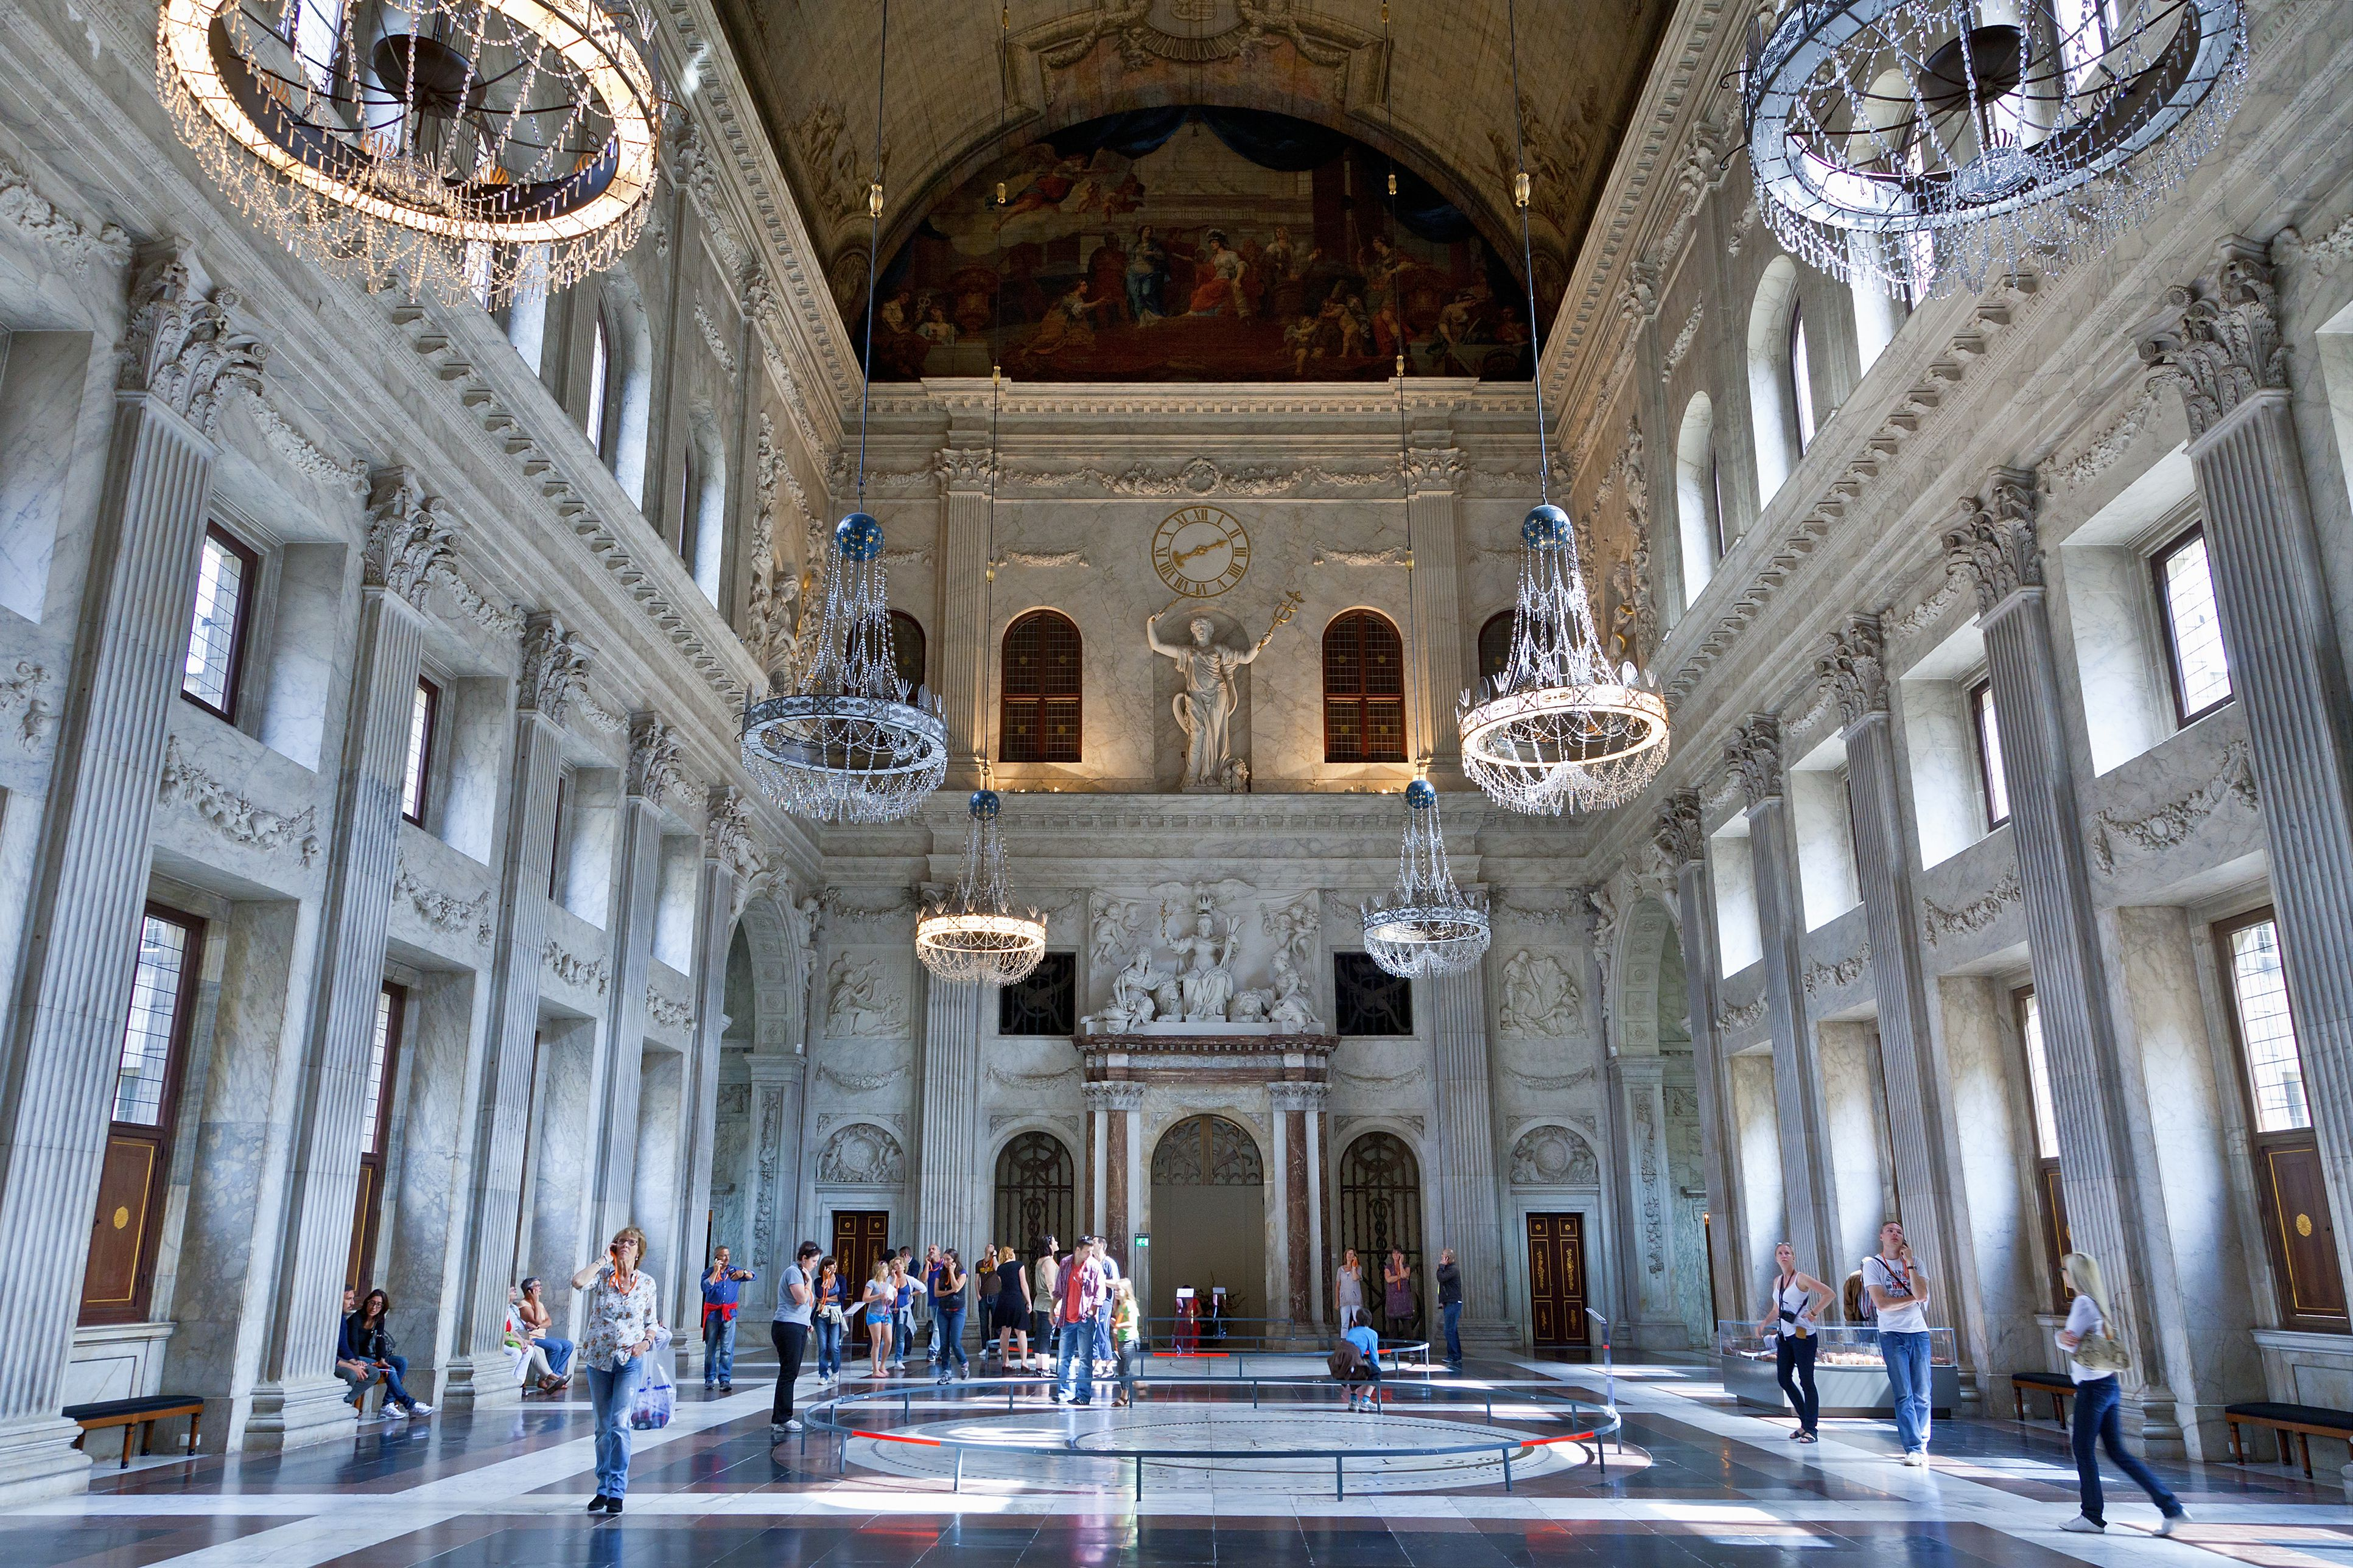 Amsterdam, The Citizens' hall in the Royal Palace